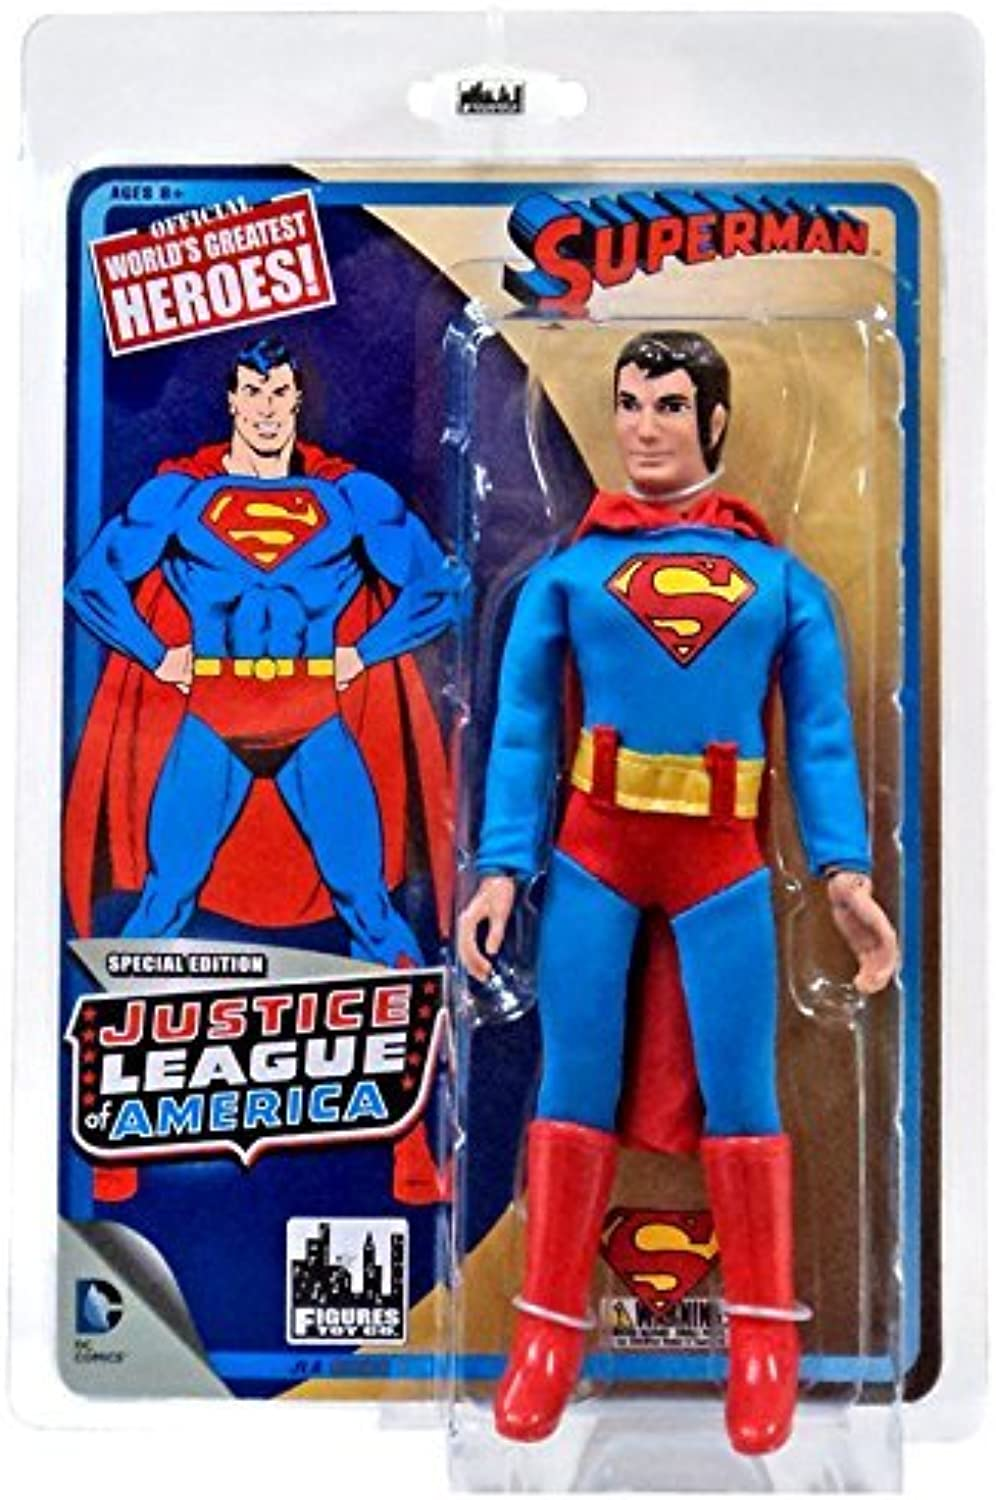 DC Justice League of America America America World's Greatest Heroes  Superman 8 Action Figure by Figures Toy Company B00ZG9OPCO | Ab dem neuesten Modell  99f29a